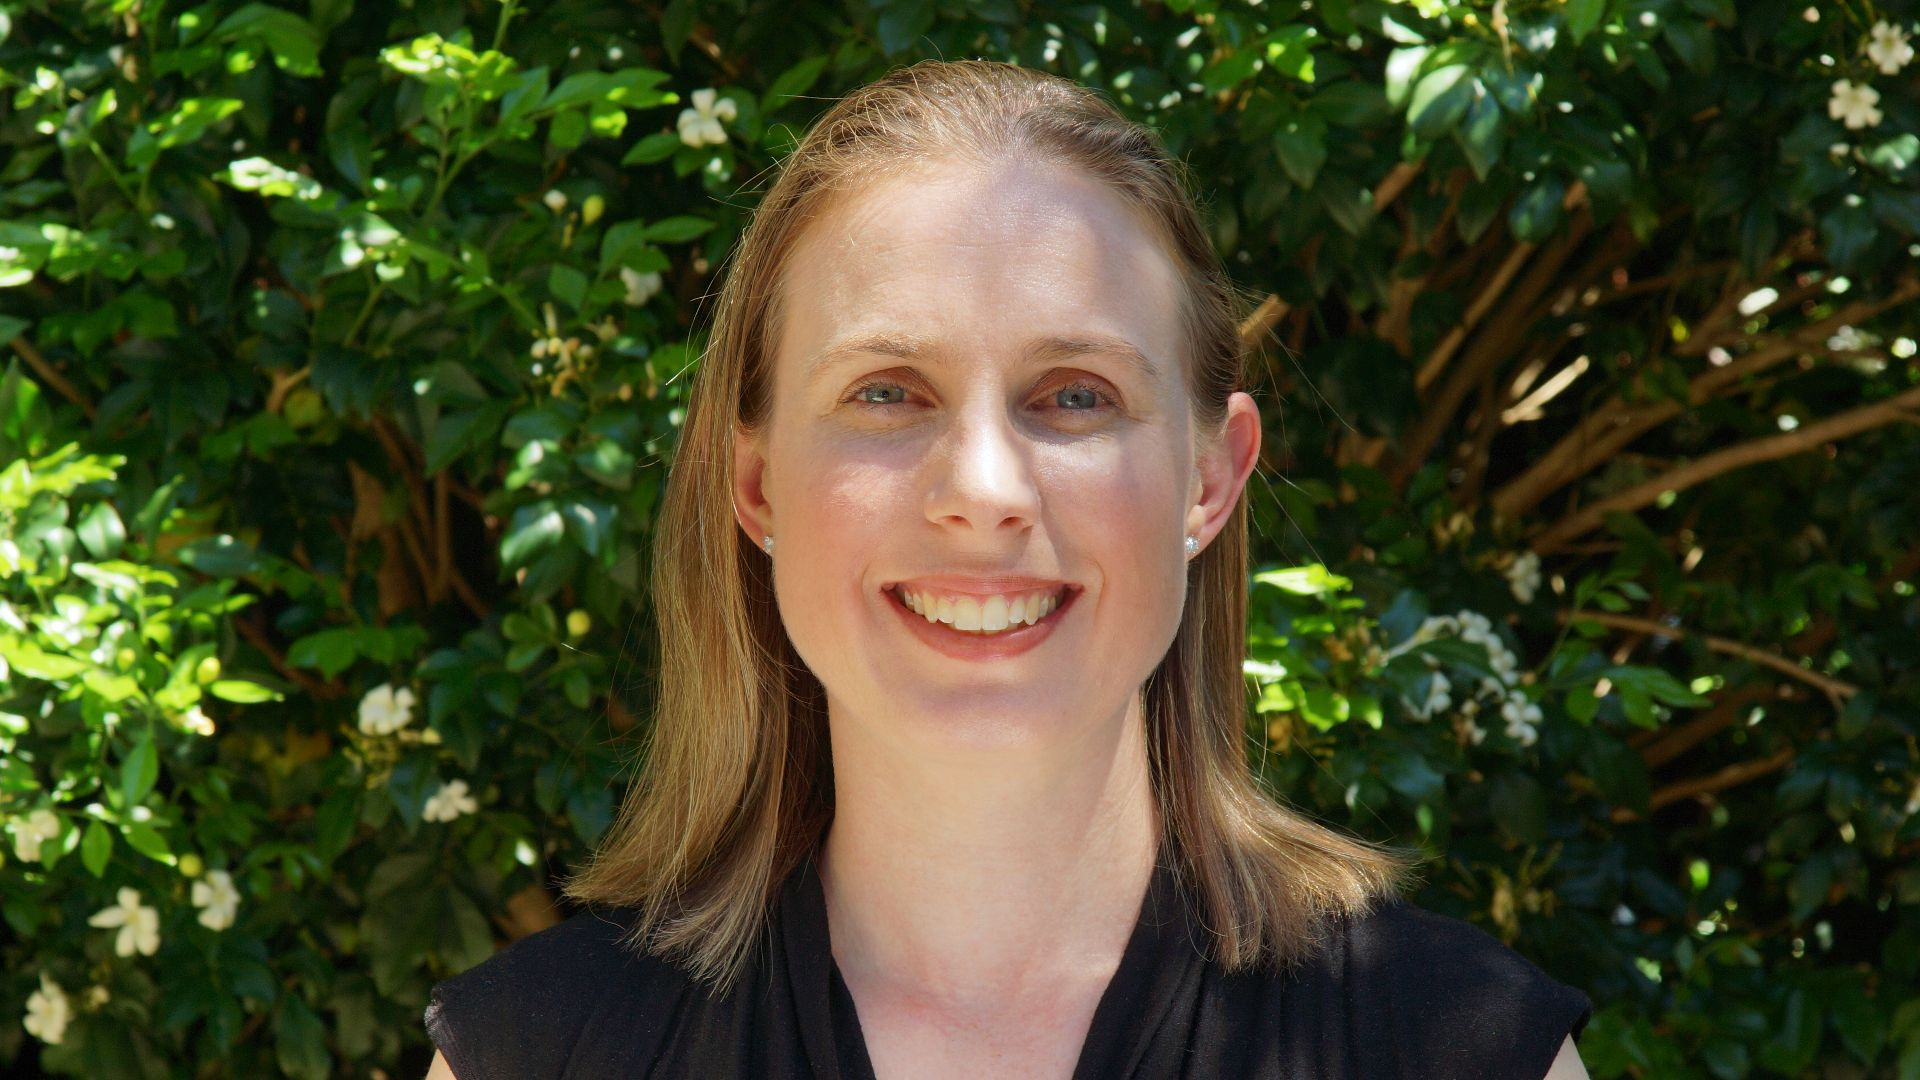 Leading speech pathology researcher hopes to help change the world